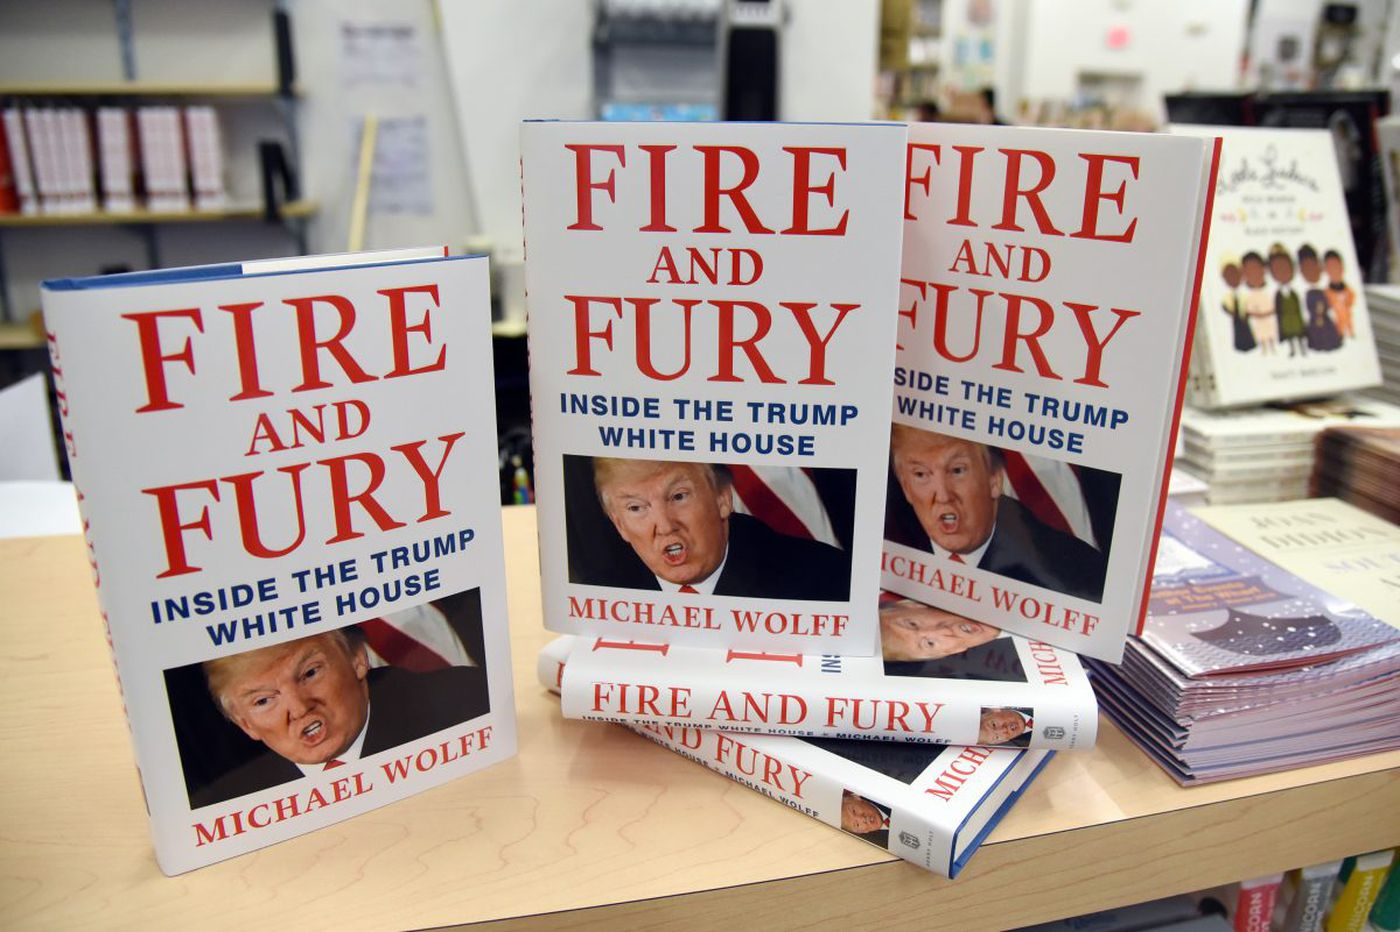 WikiLeaks shared the full 'Fire and Fury' book online